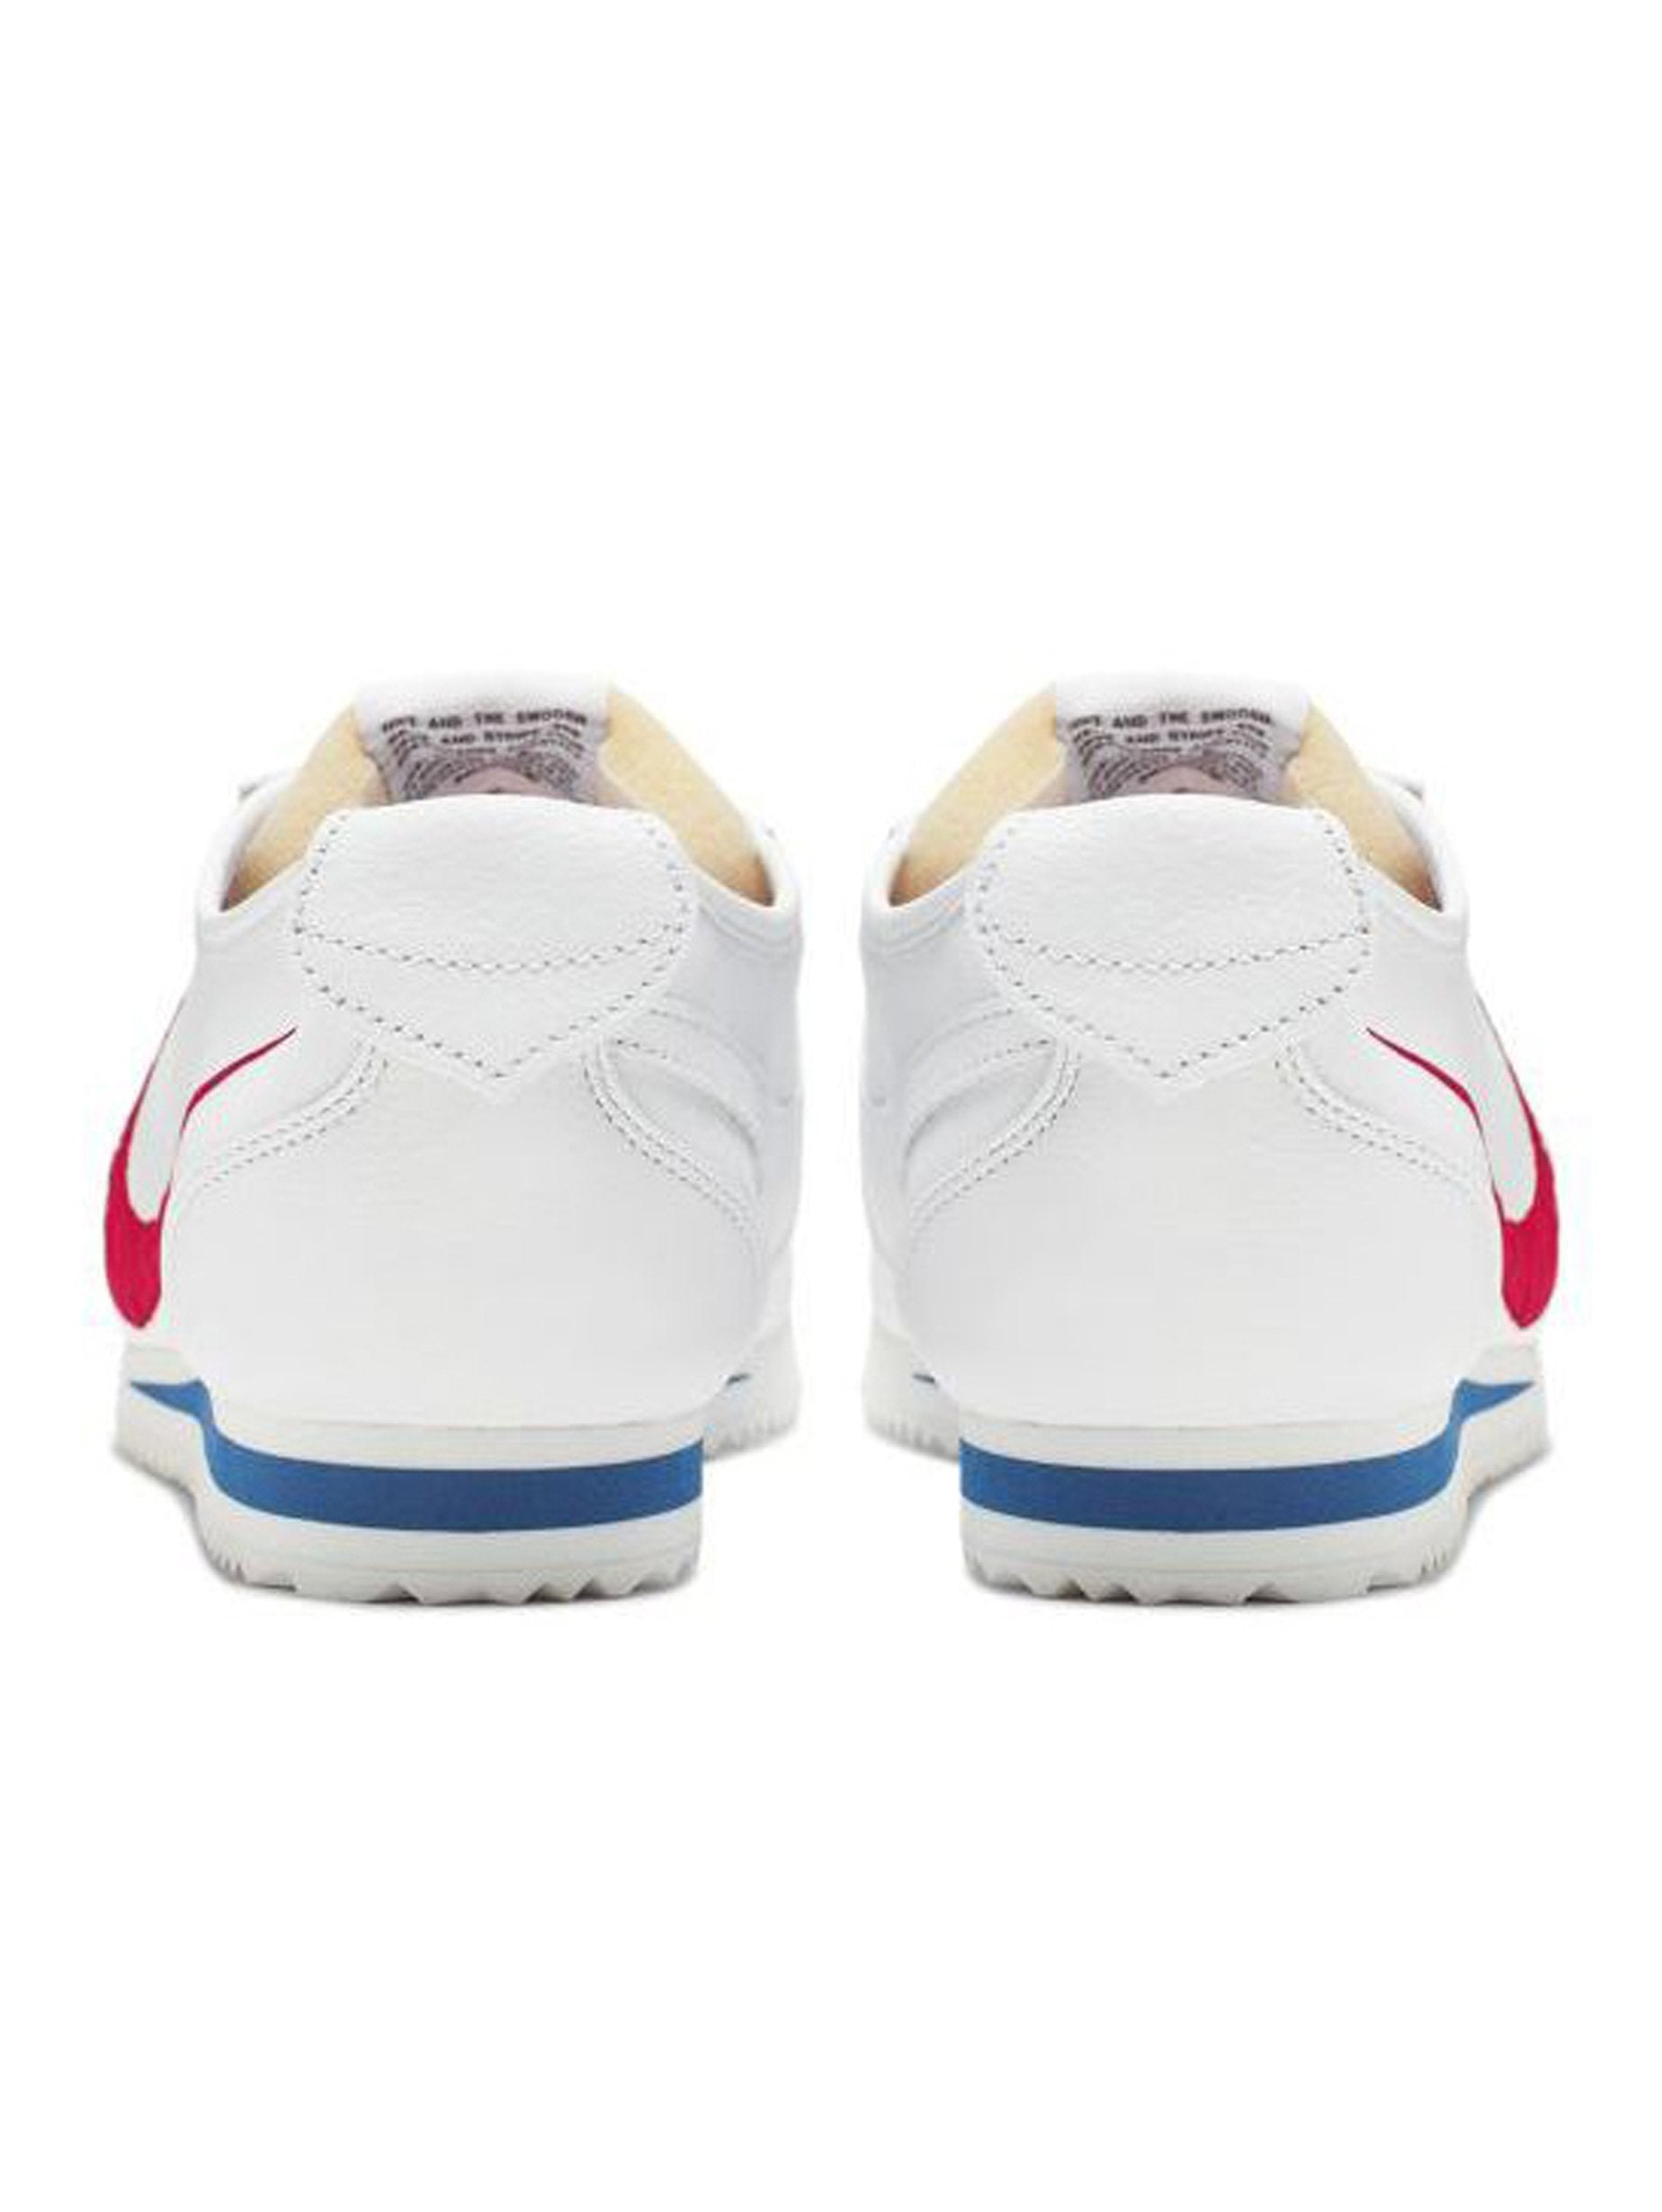 White / Varsity Red/ Game Royal Nike Cortez '72 Shoedog Q (Swoosh) 4